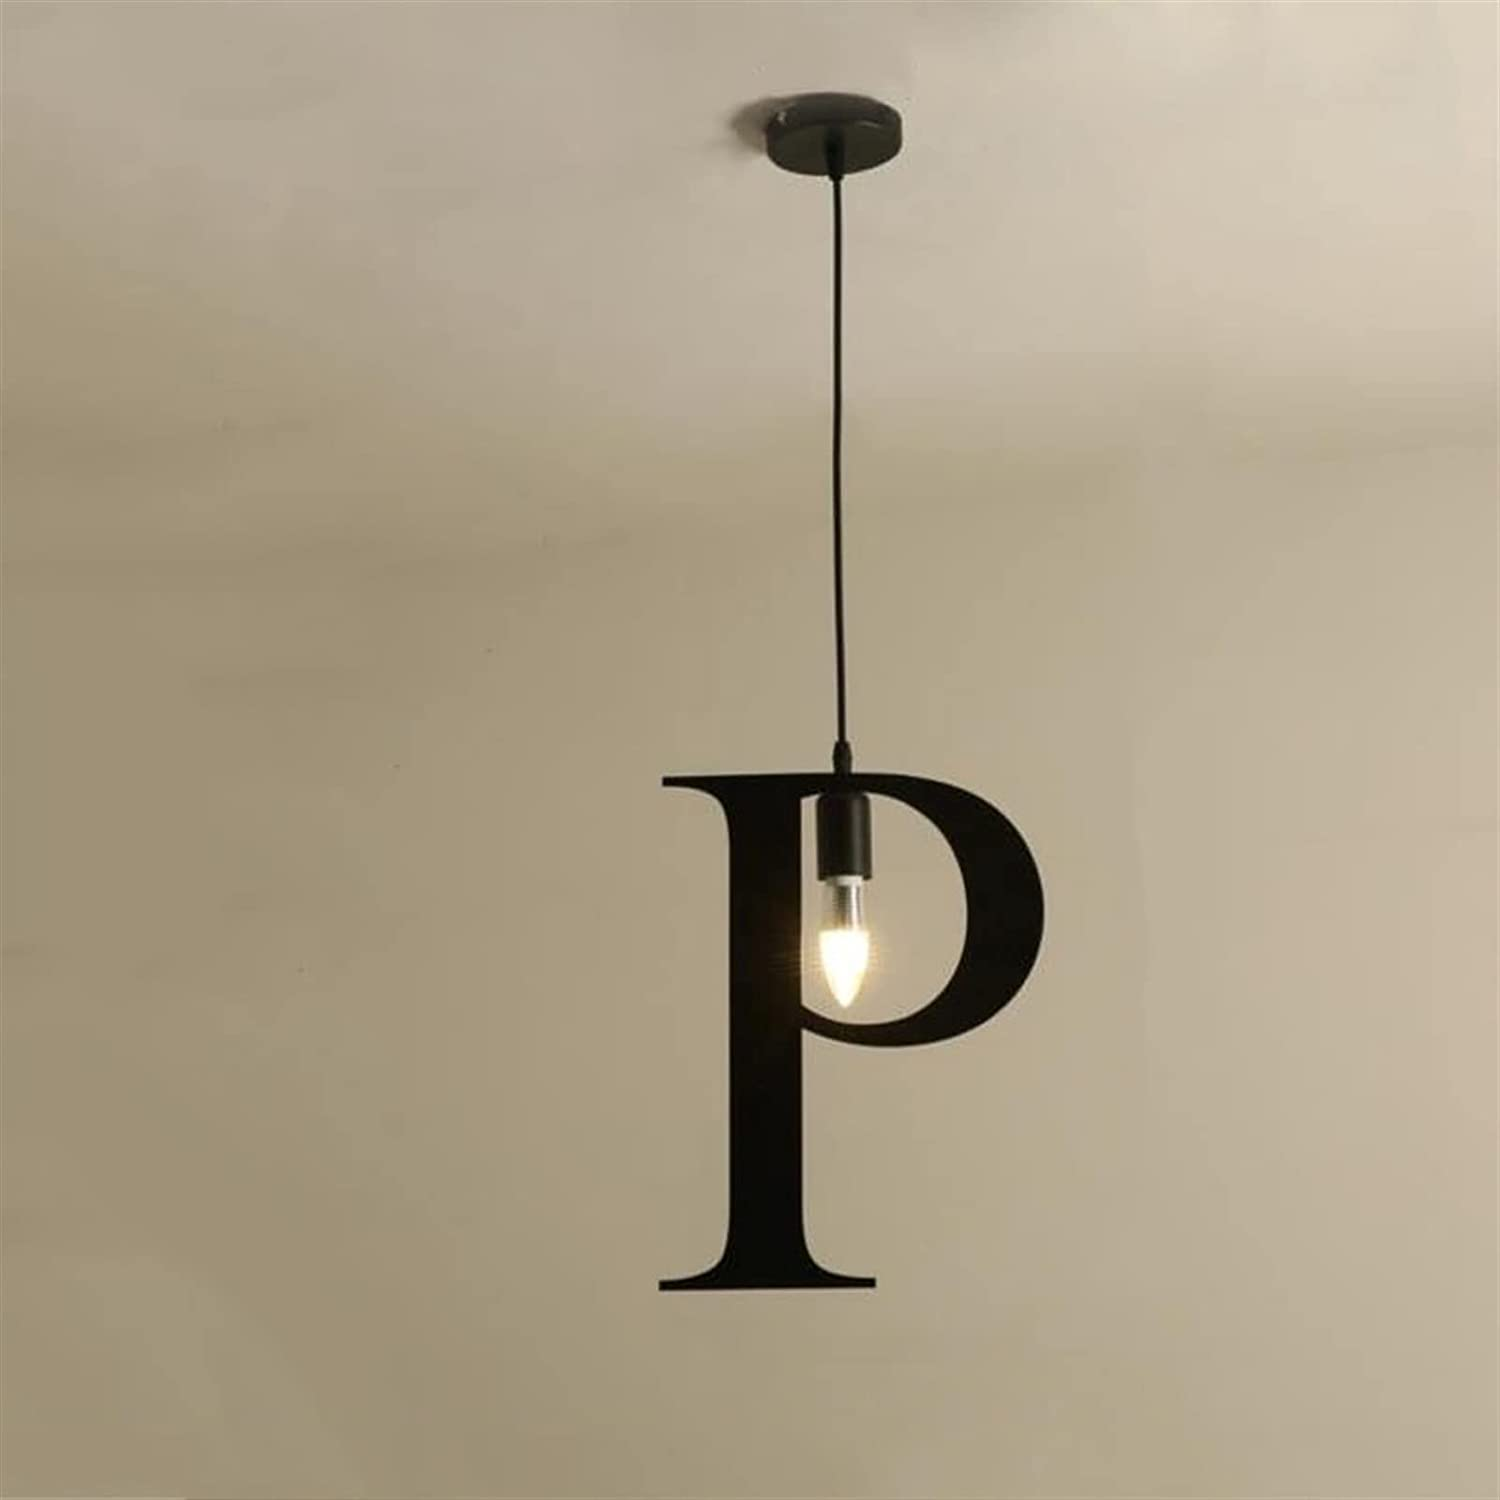 Zziyj Shipping included Iron Lamp Retro Industrial Chandelier Ceilin Pendant Free shipping / New Light